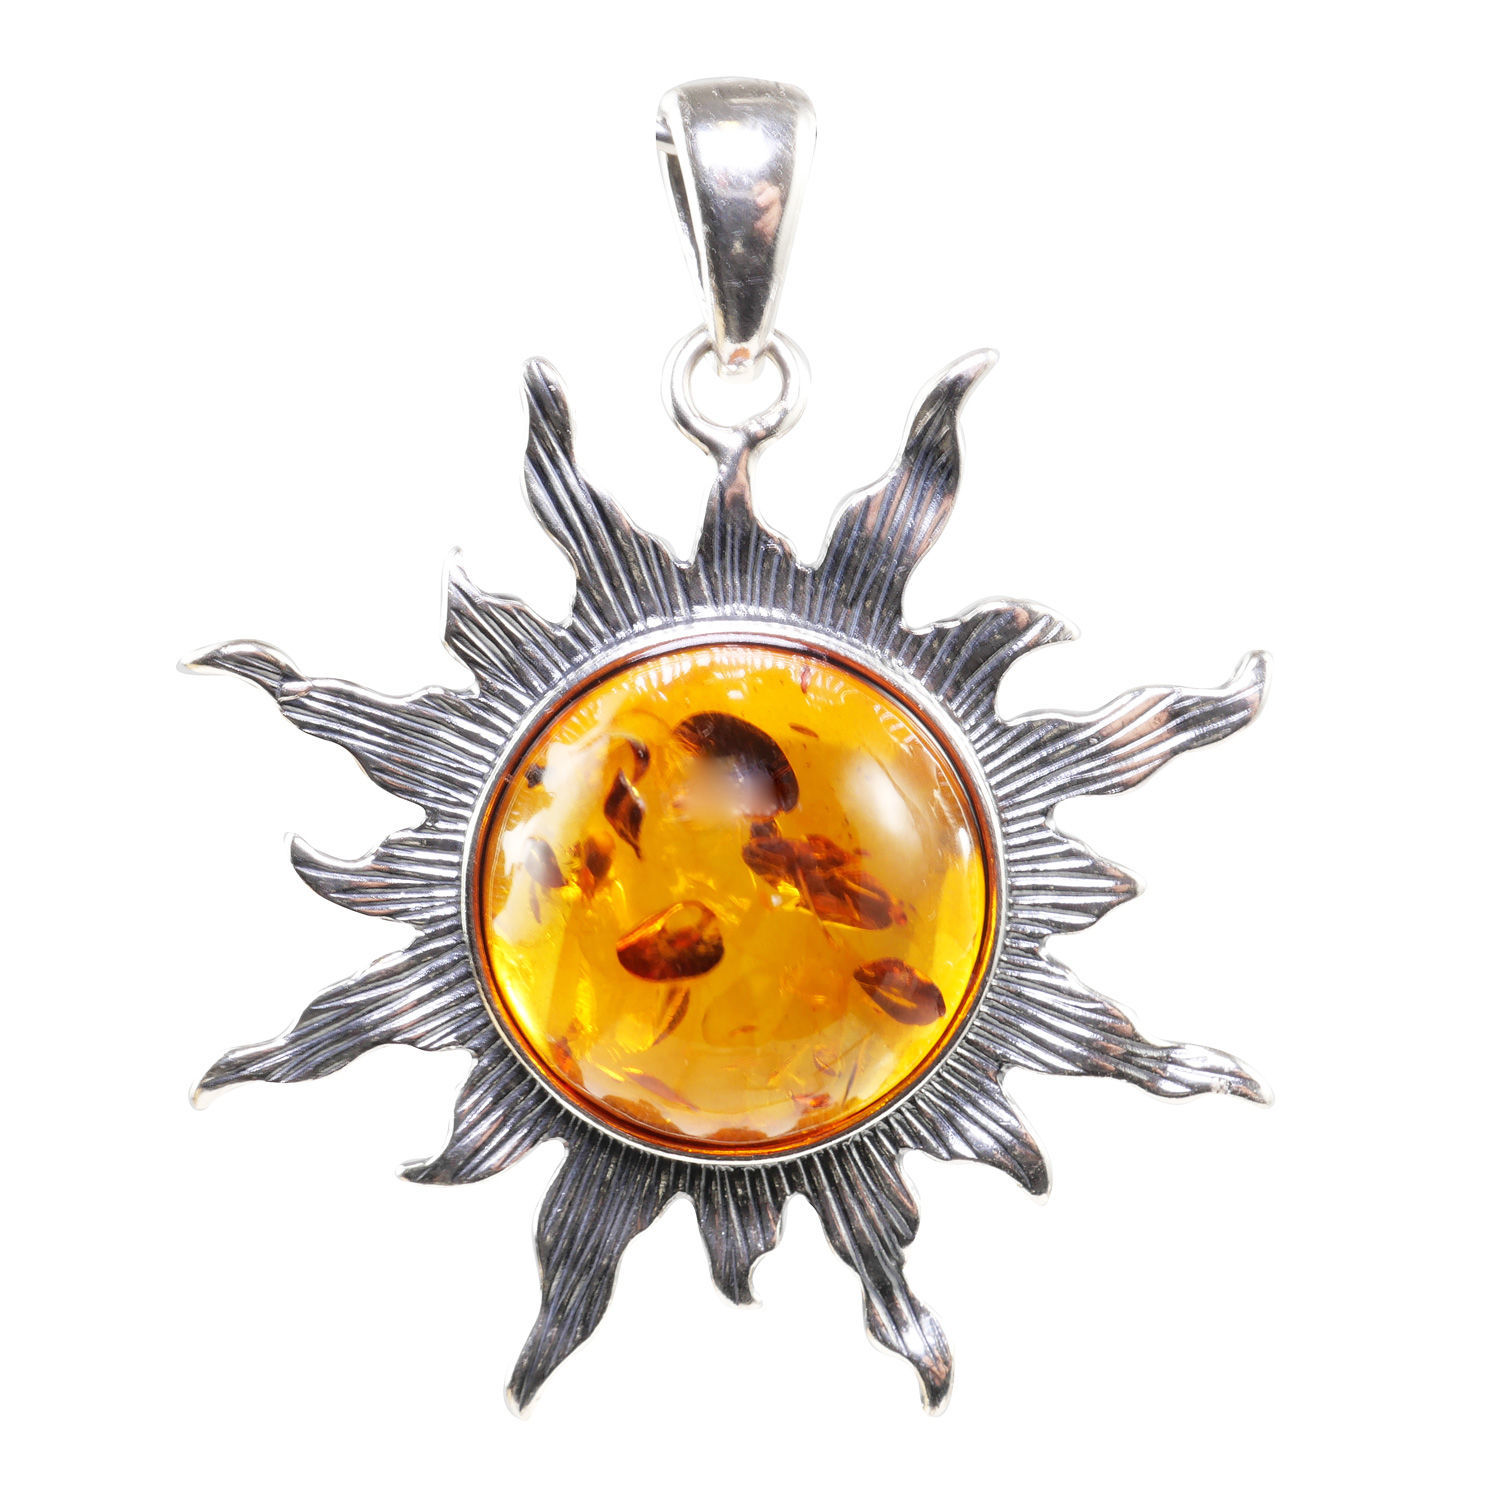 amber inclusions silver pendant amber jewelry Amber pendant Drop pendant amber amber necklace Baltic amber pendant natural amber